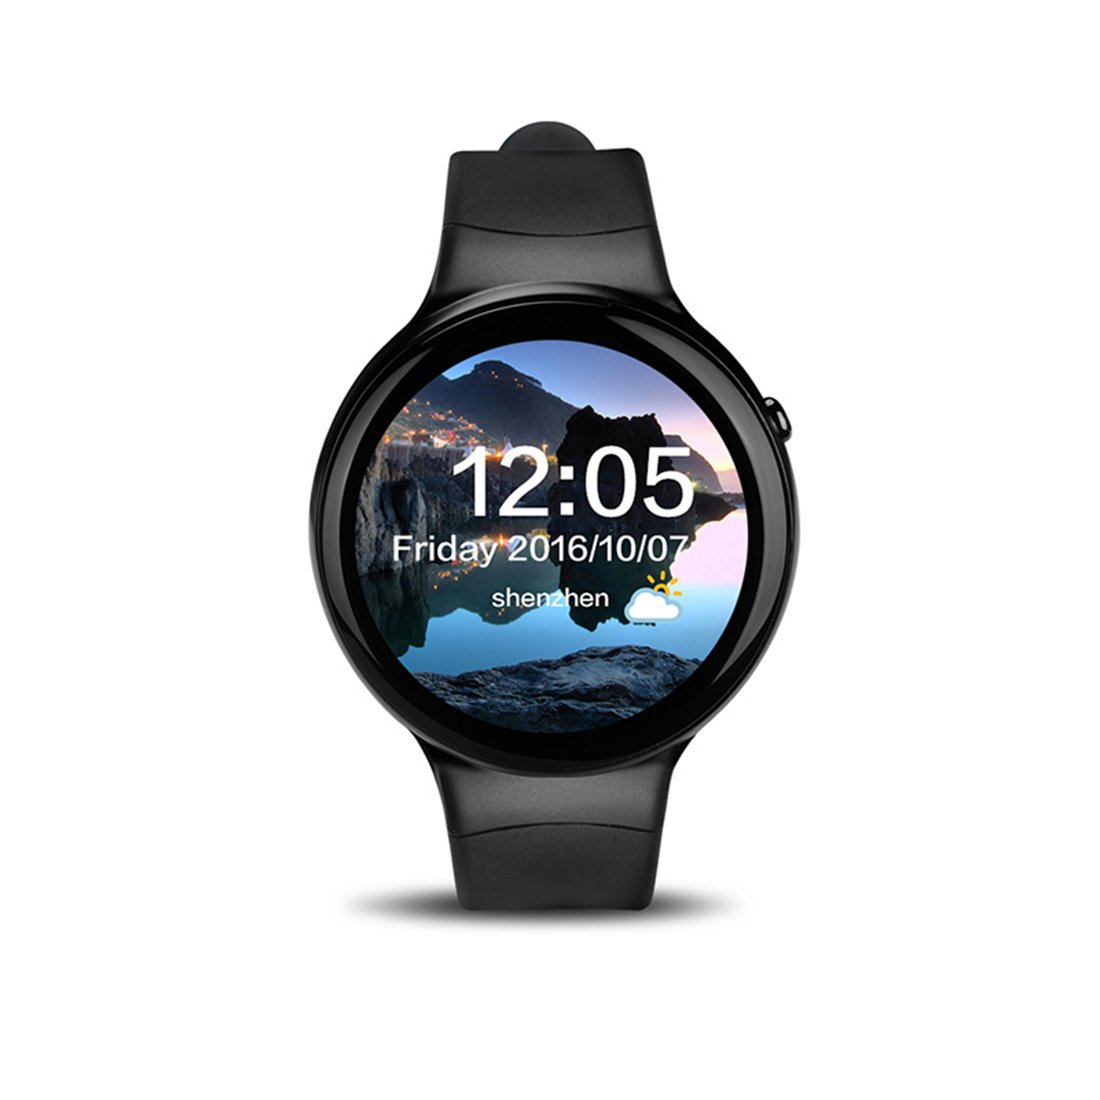 Amazon.com: PINCHU I4 Smart Watch Phone Android 5.1 1G RAM ...